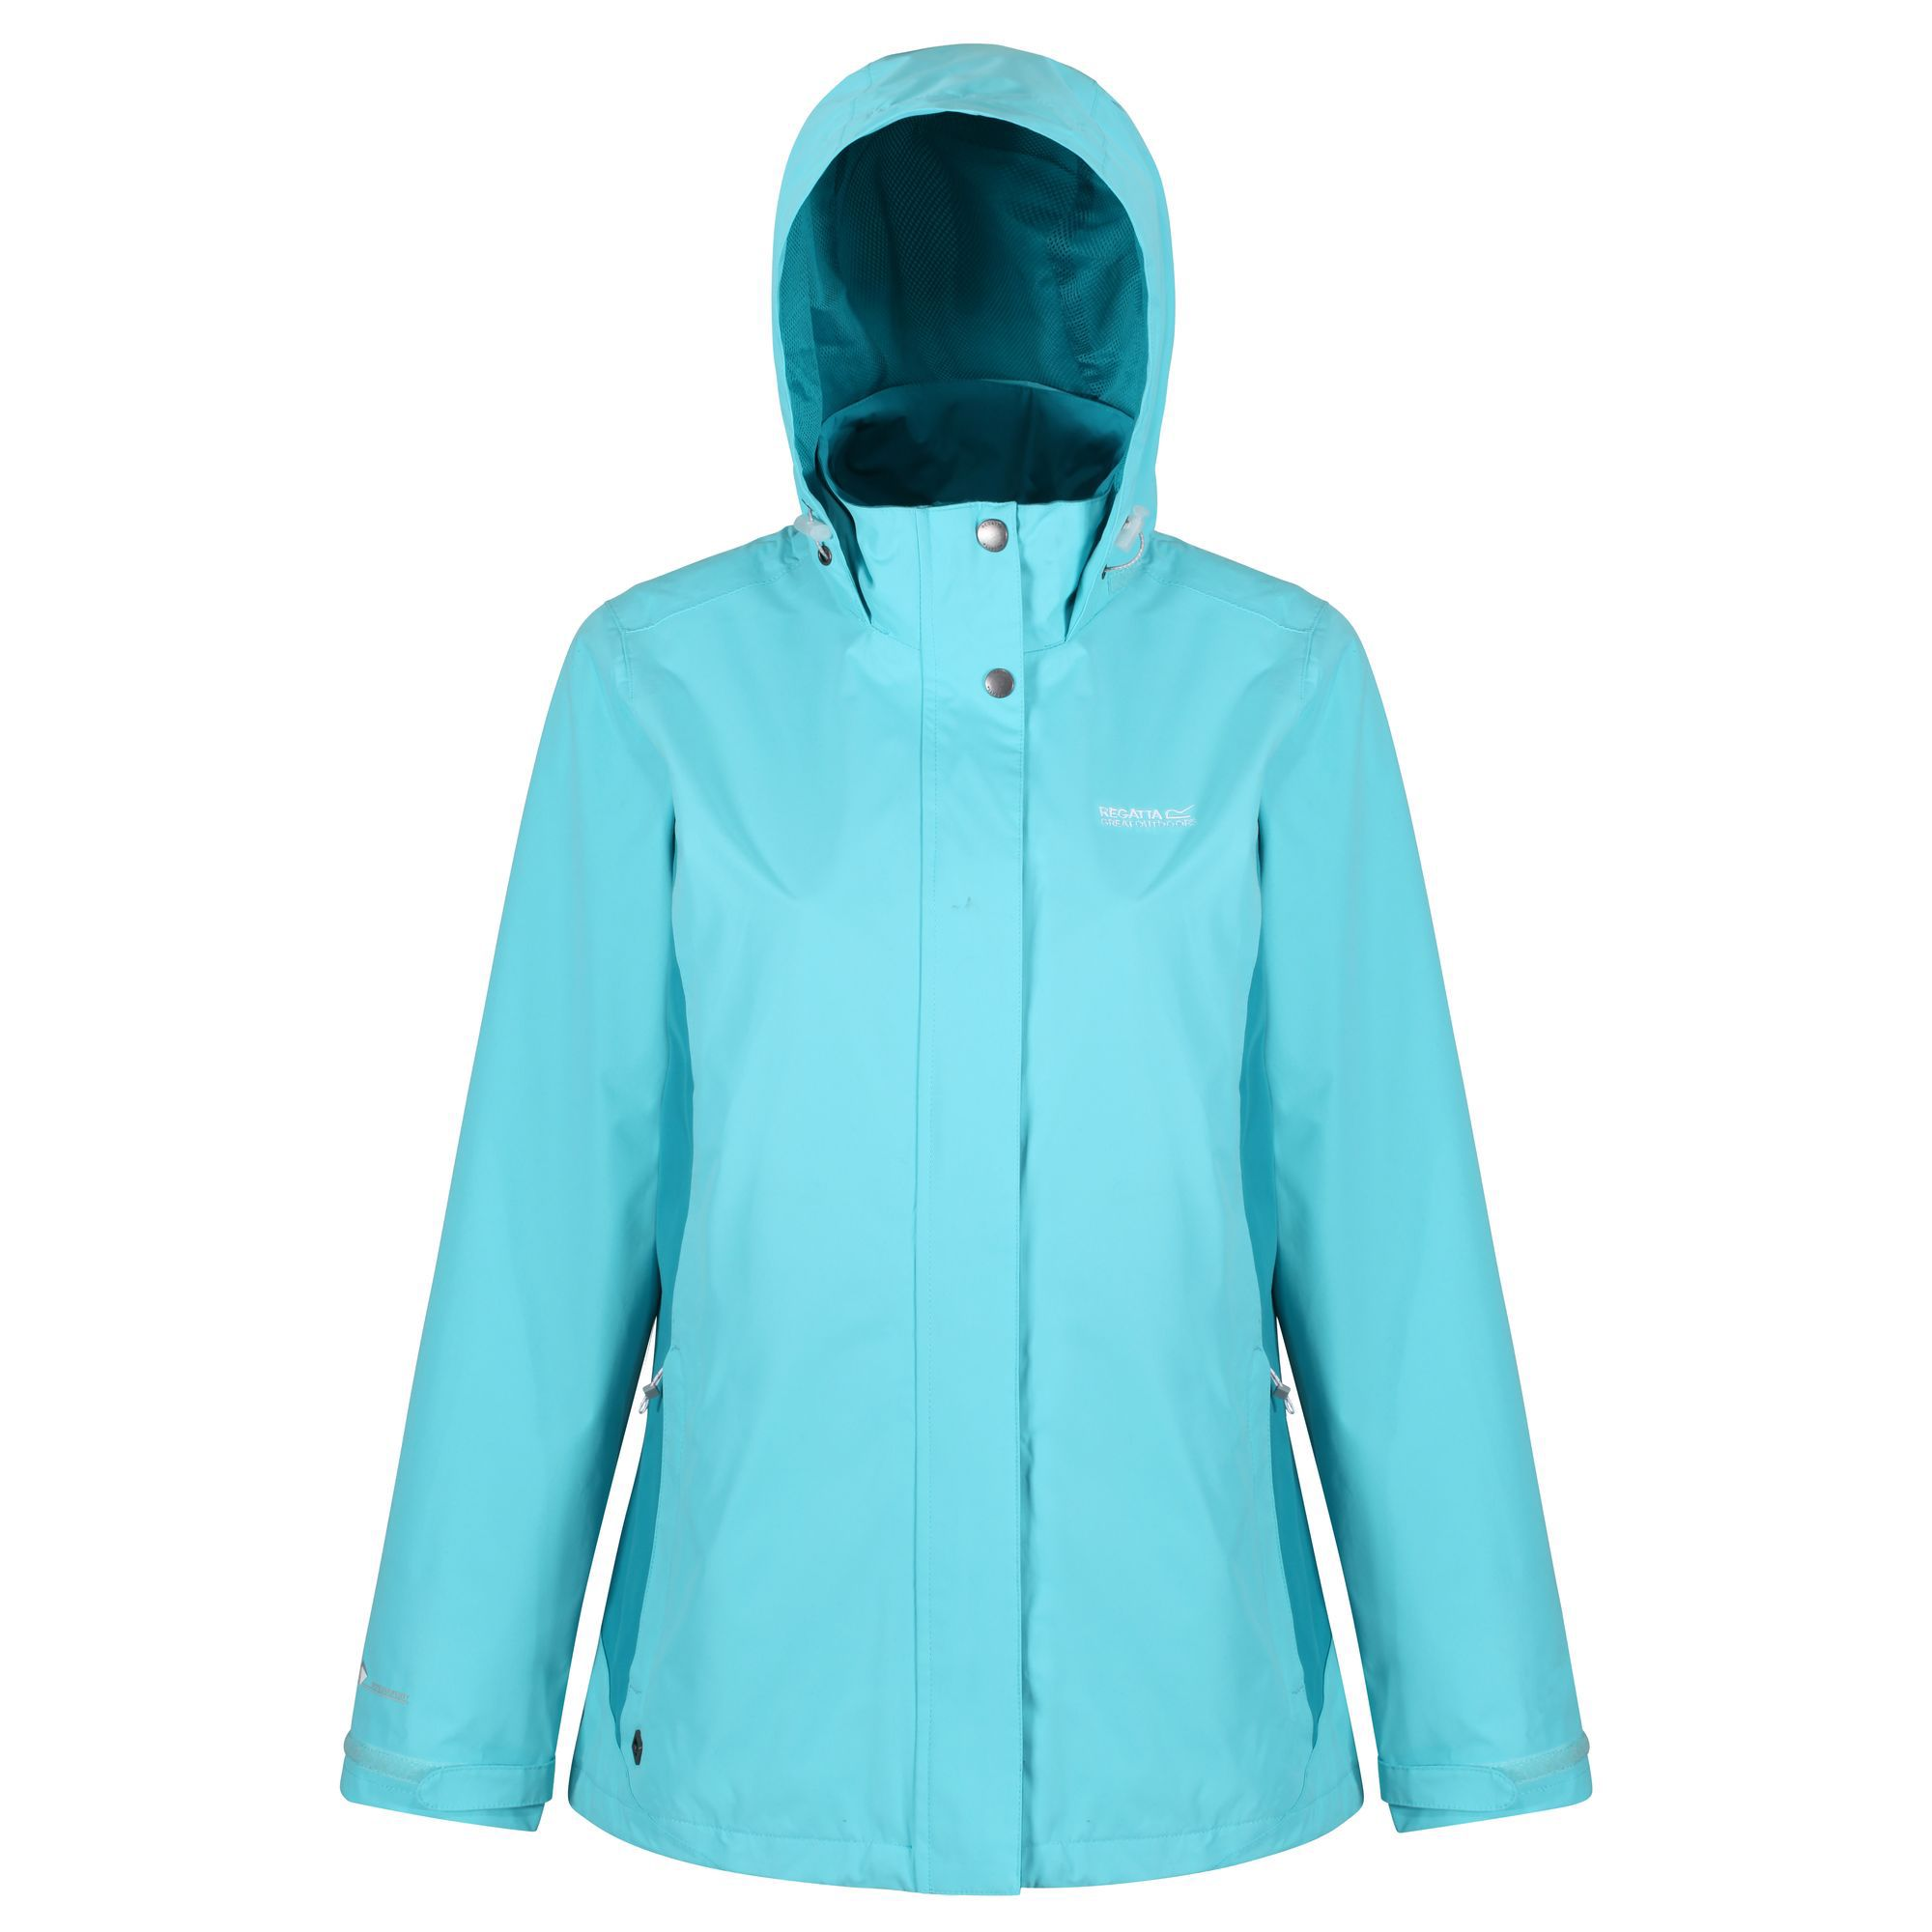 Regatta Daysha waterproof Jacket, Aqua